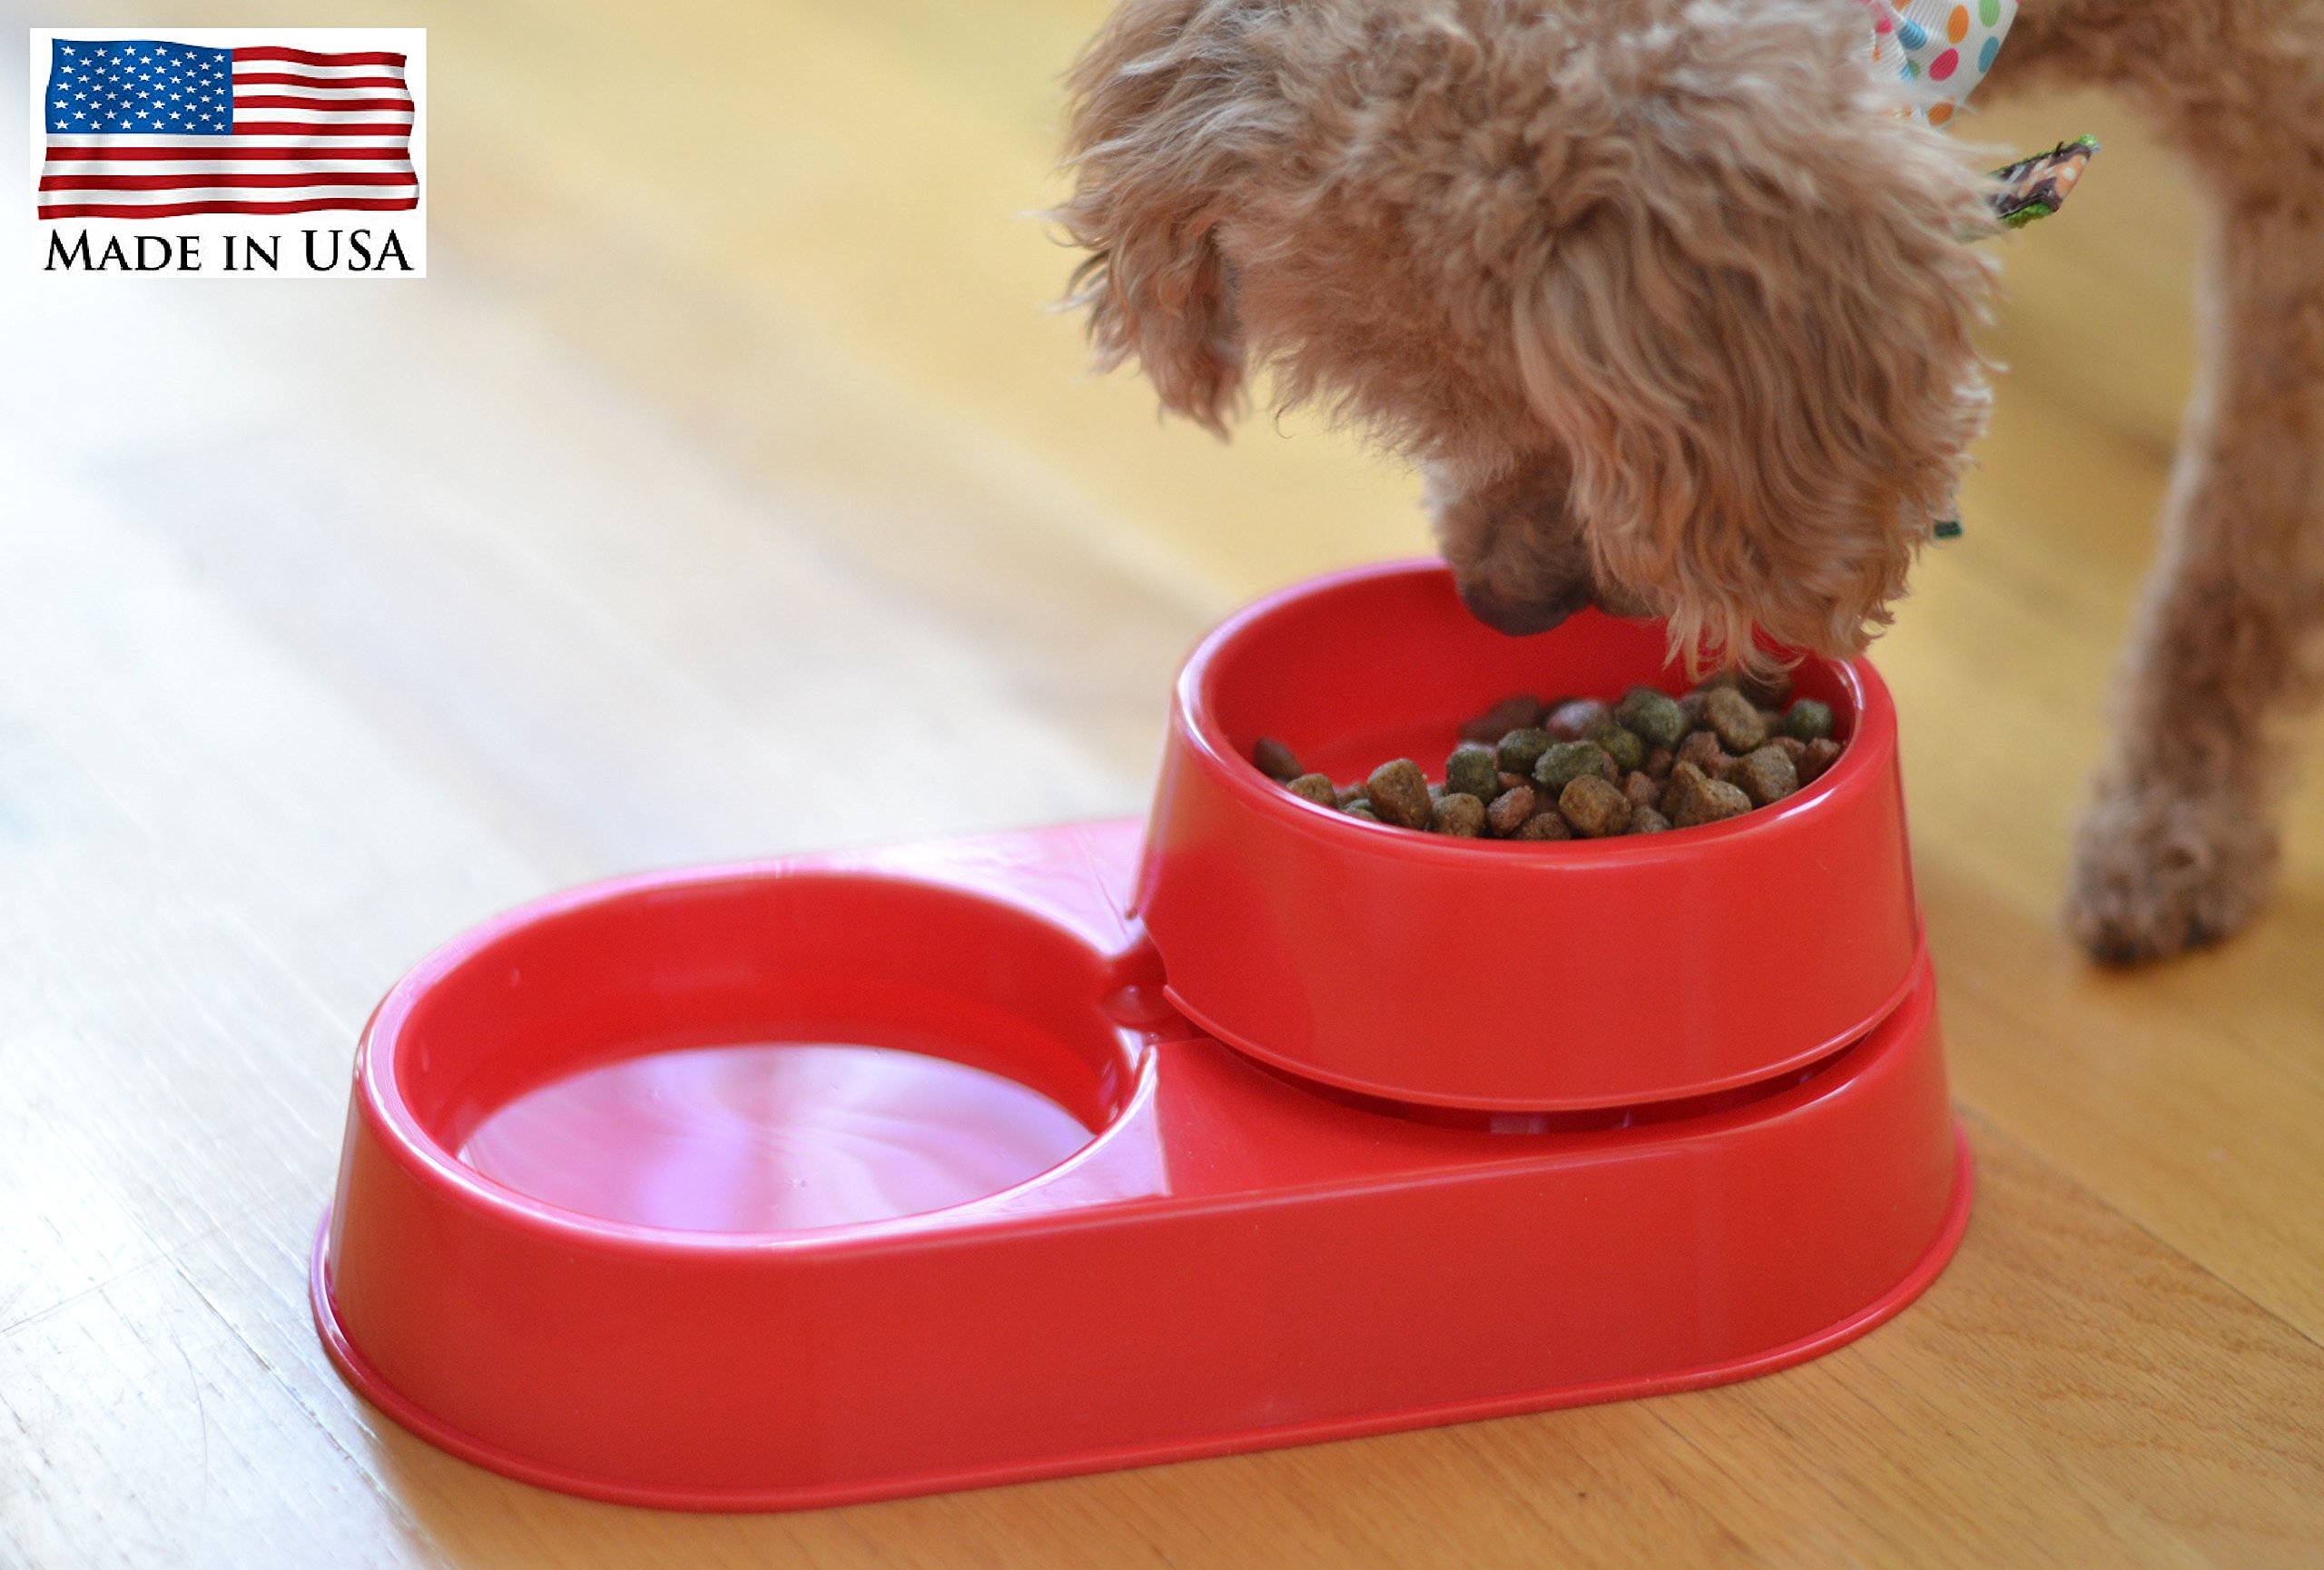 The 3-in-1 Ant Free Pet Dish